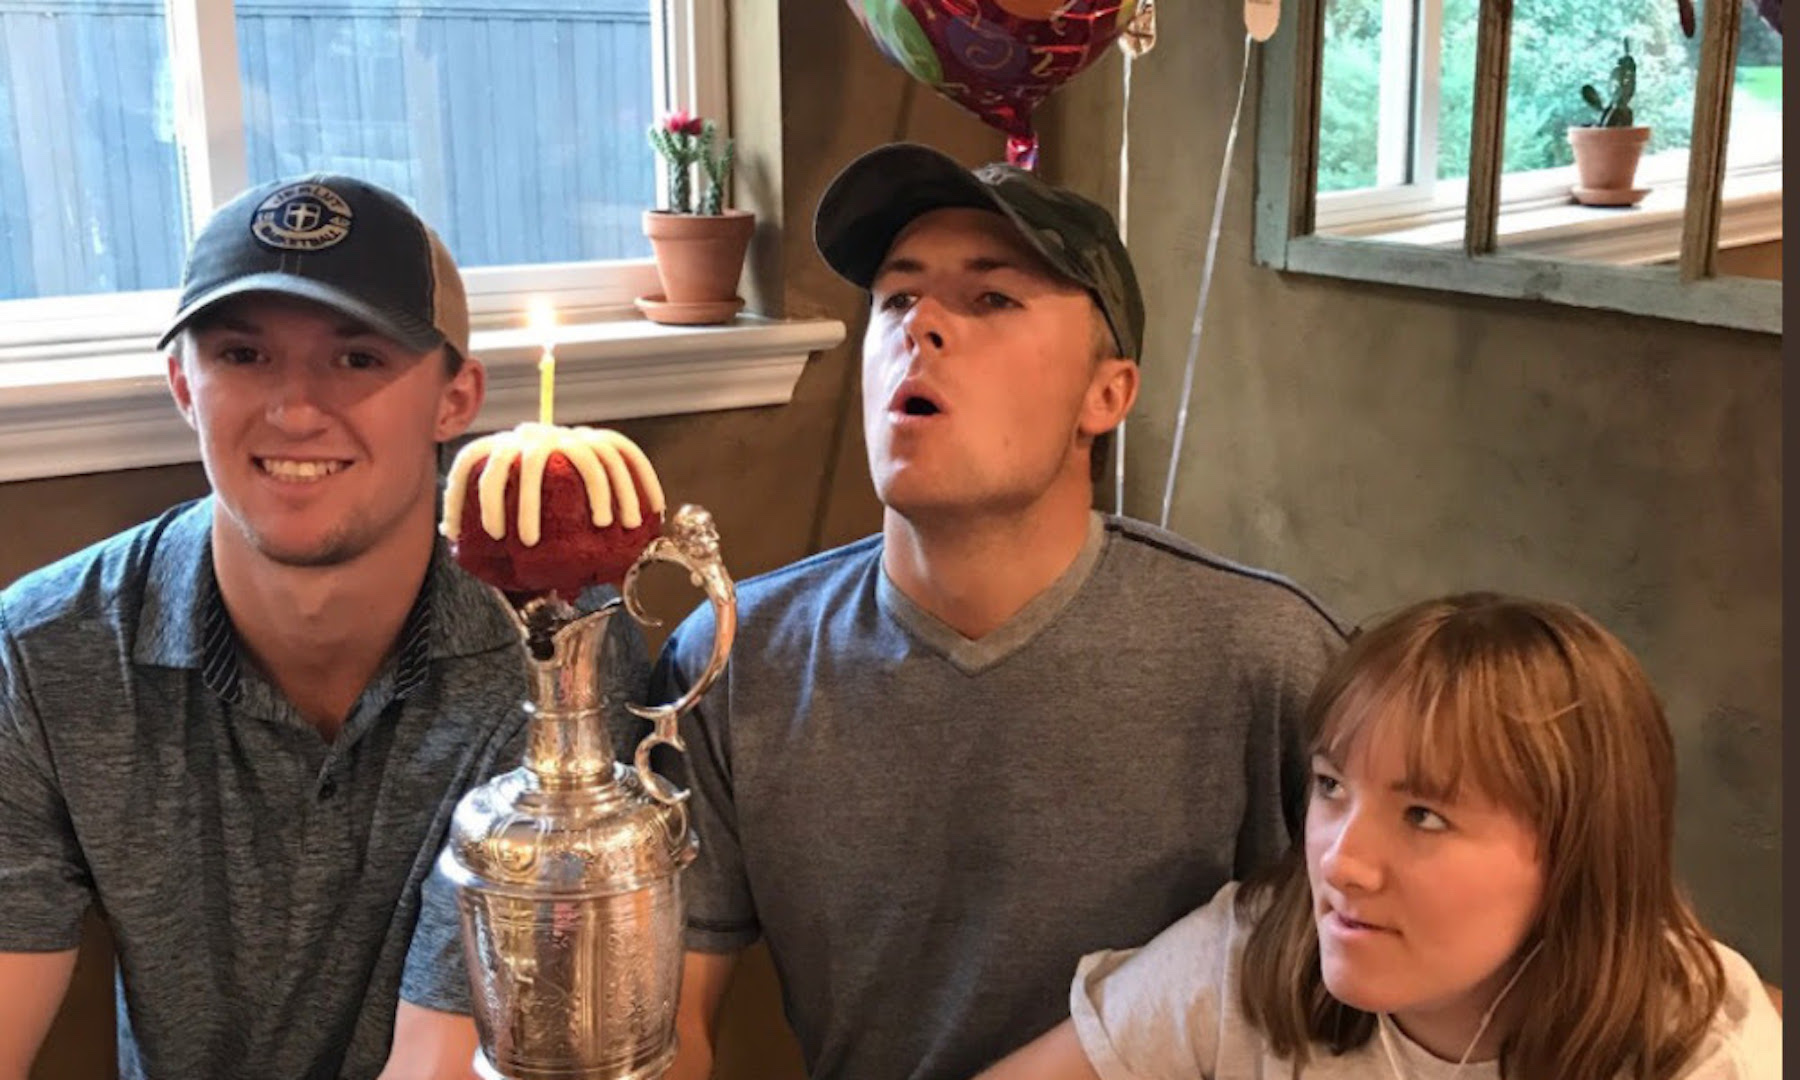 Jordan Spieth celebrates his 24th birthday in style